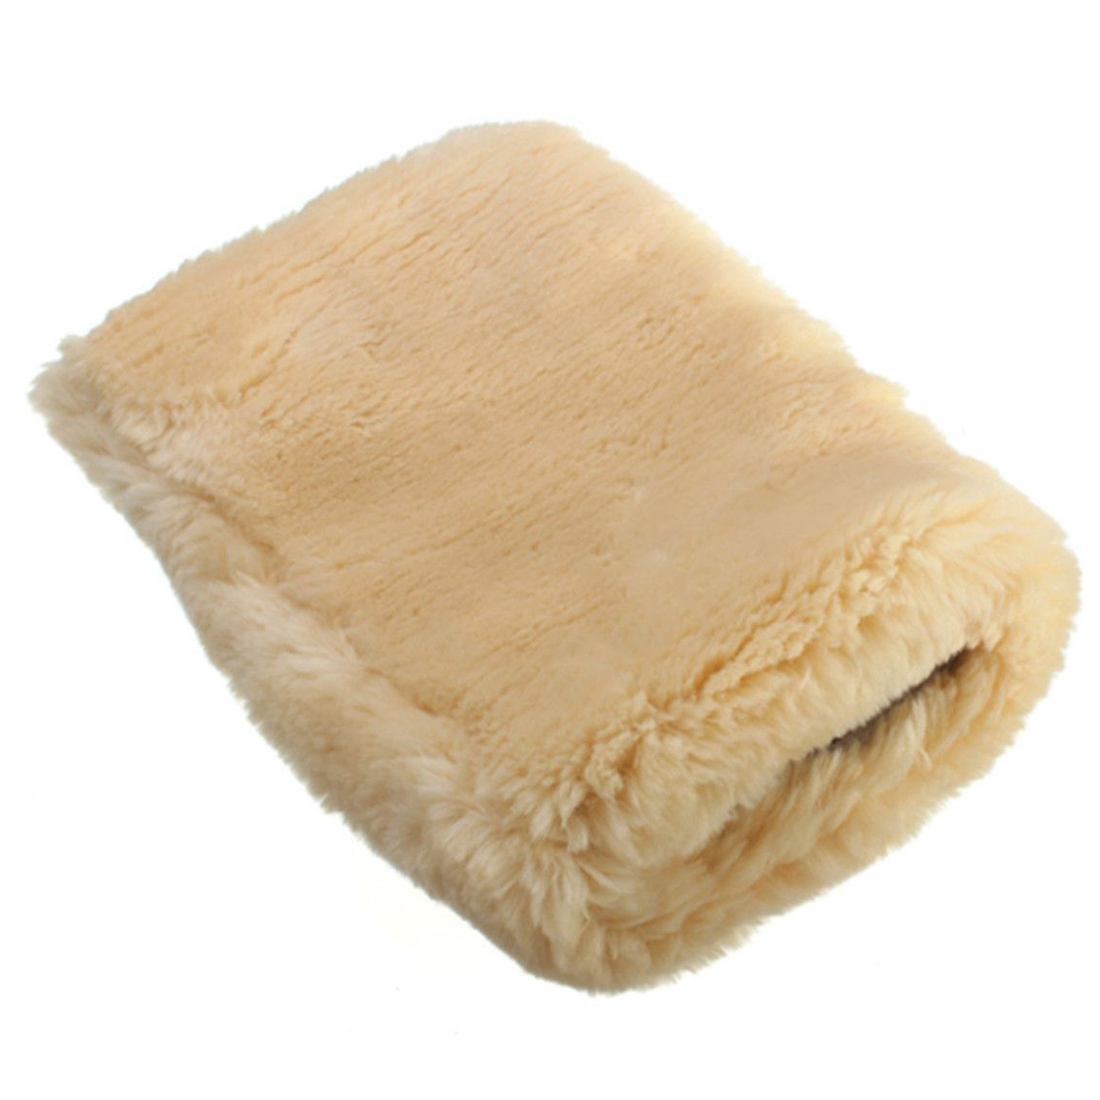 Home and Crafts Sheepskin Wash Mitt+Buff Dust Pad for Pets Clean Naturally!